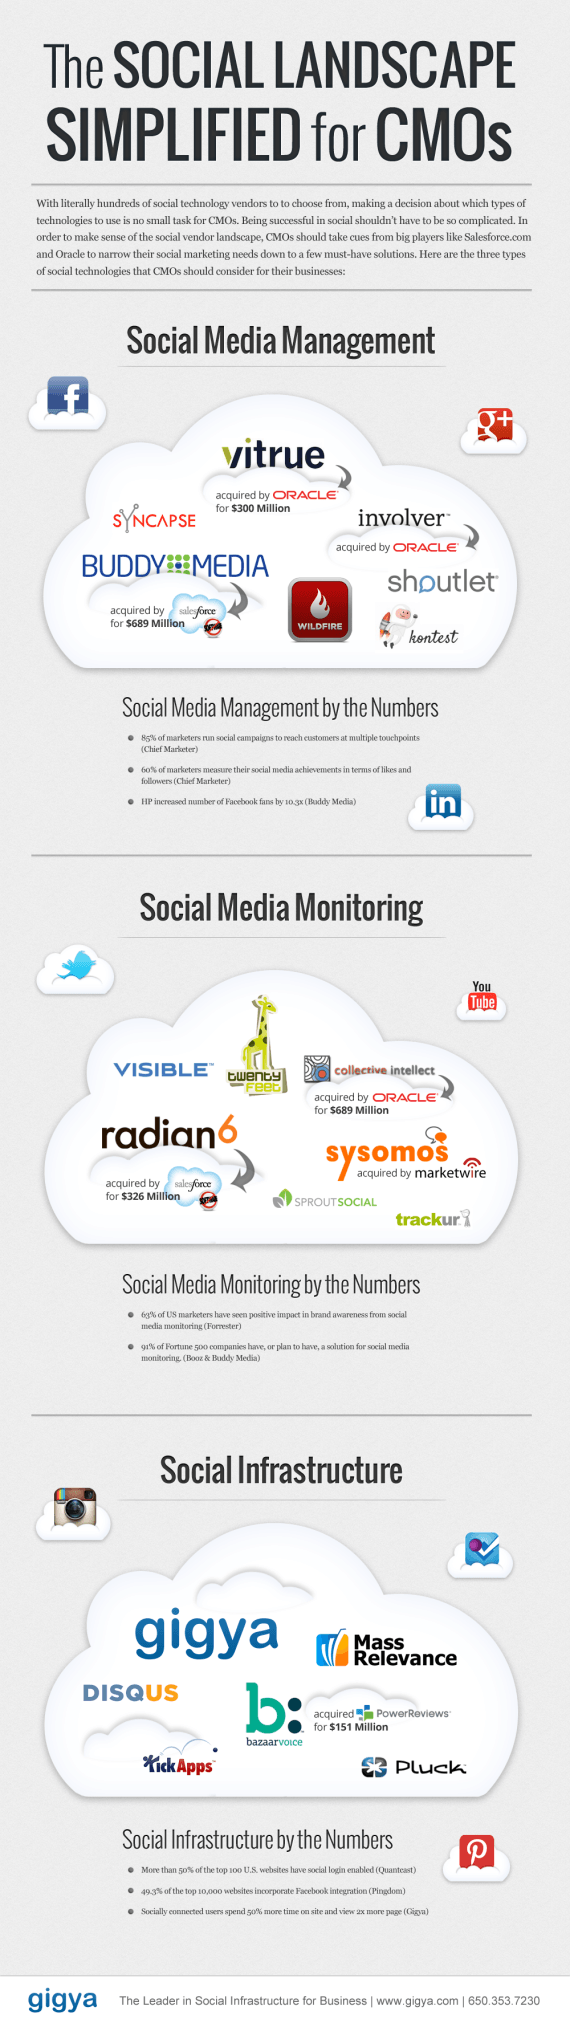 Social Media Tools - Content-Management, Monitoring & Features in #infographic.  While check out #knackmap. To help you achieve your social media goal, all in one place. Learn more at knackmap.com